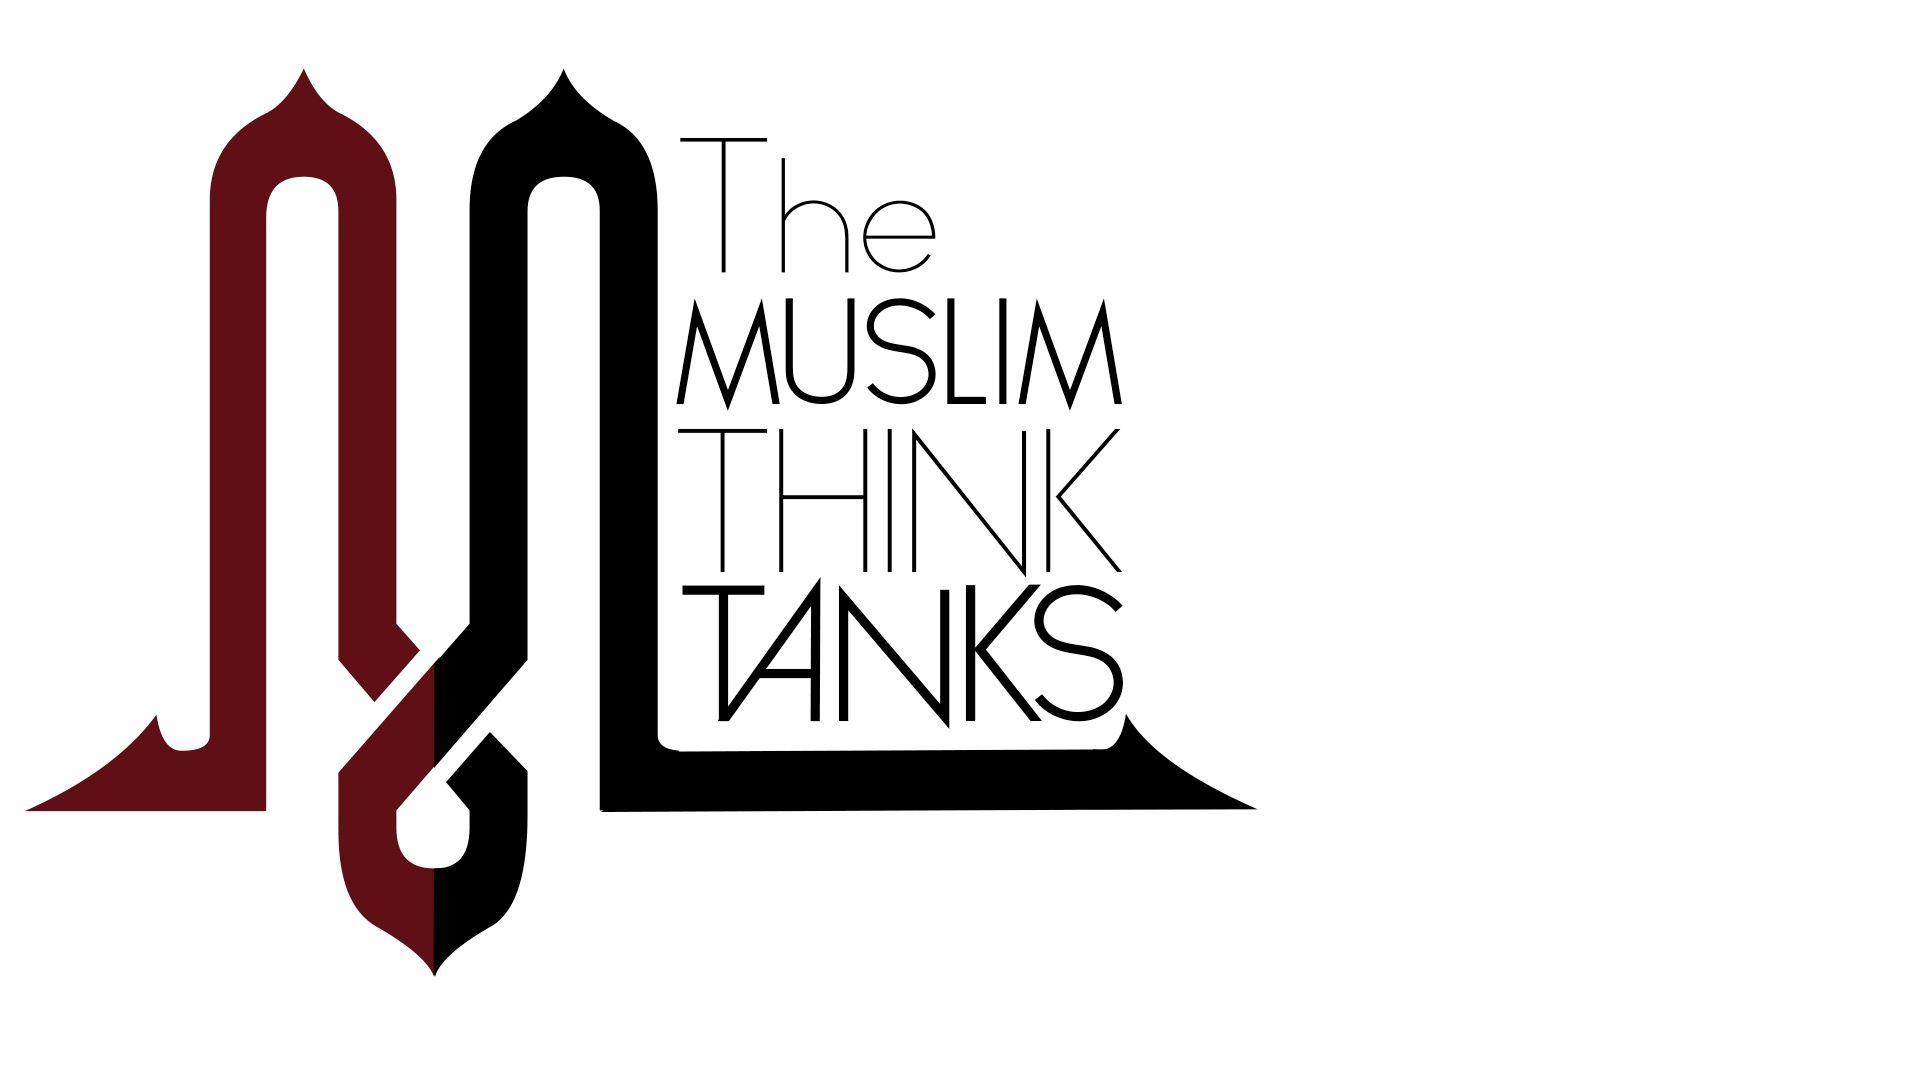 the muslim think tanks france paris meetup. Black Bedroom Furniture Sets. Home Design Ideas